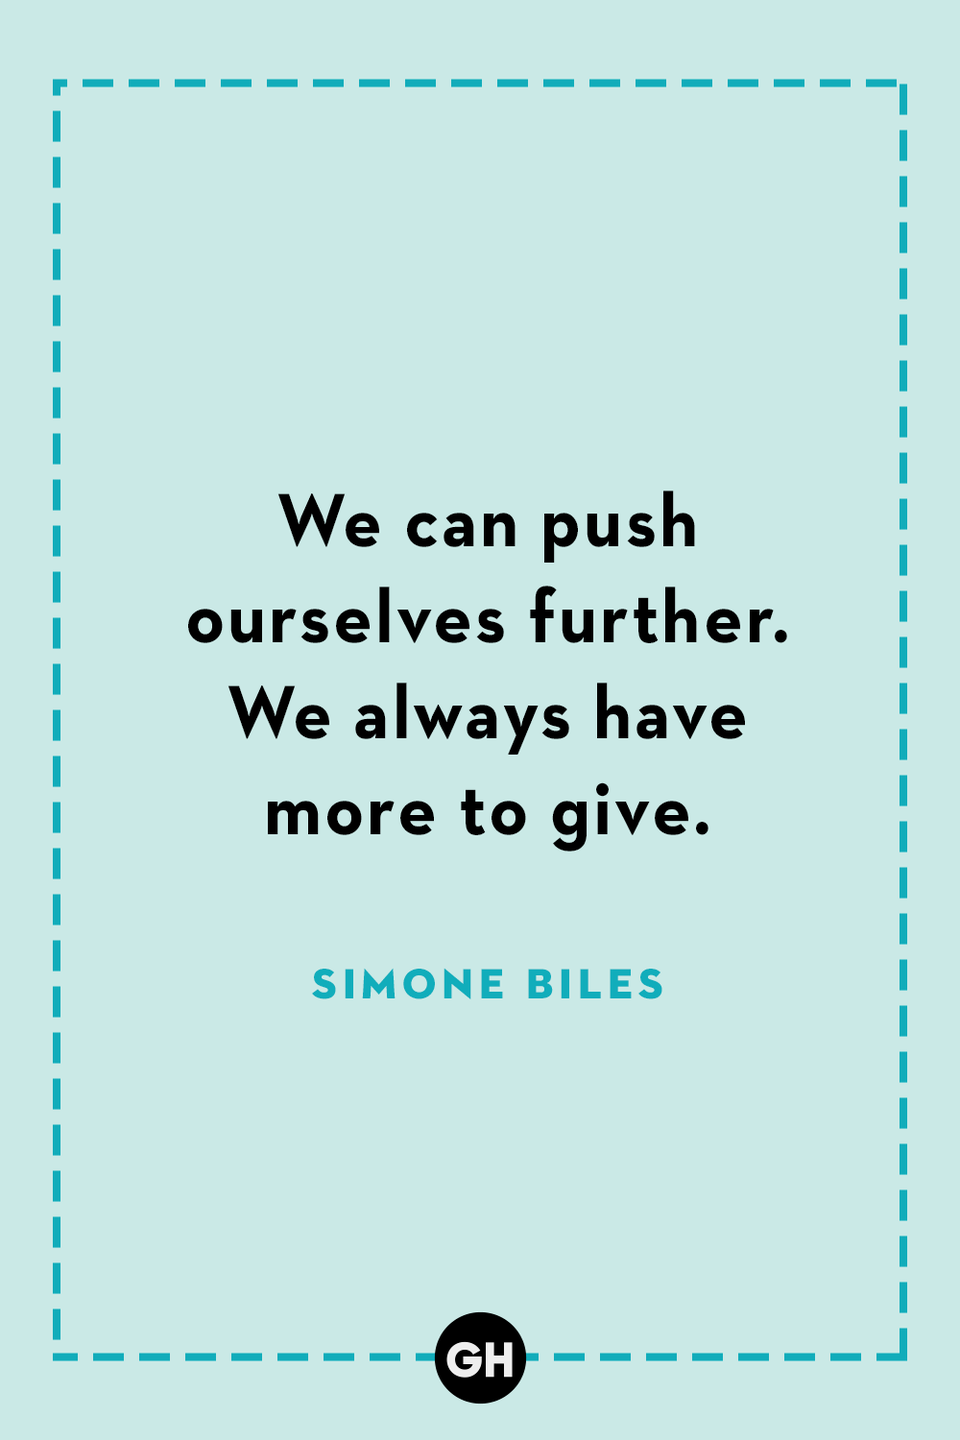 <p>We can push ourselves further. We always have more to give.</p>